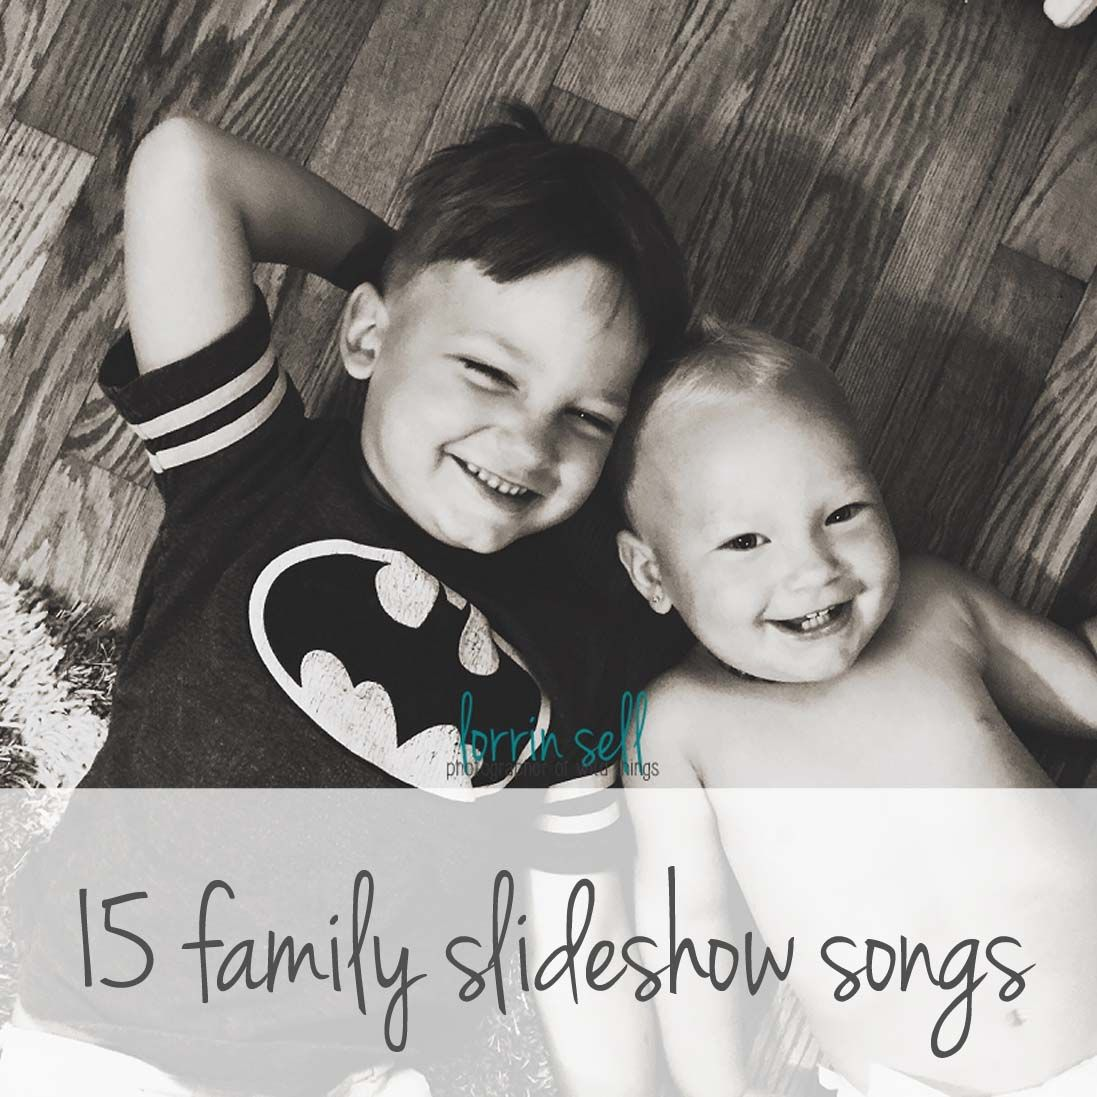 15 Family Slideshow Songs For Your End Of The Year